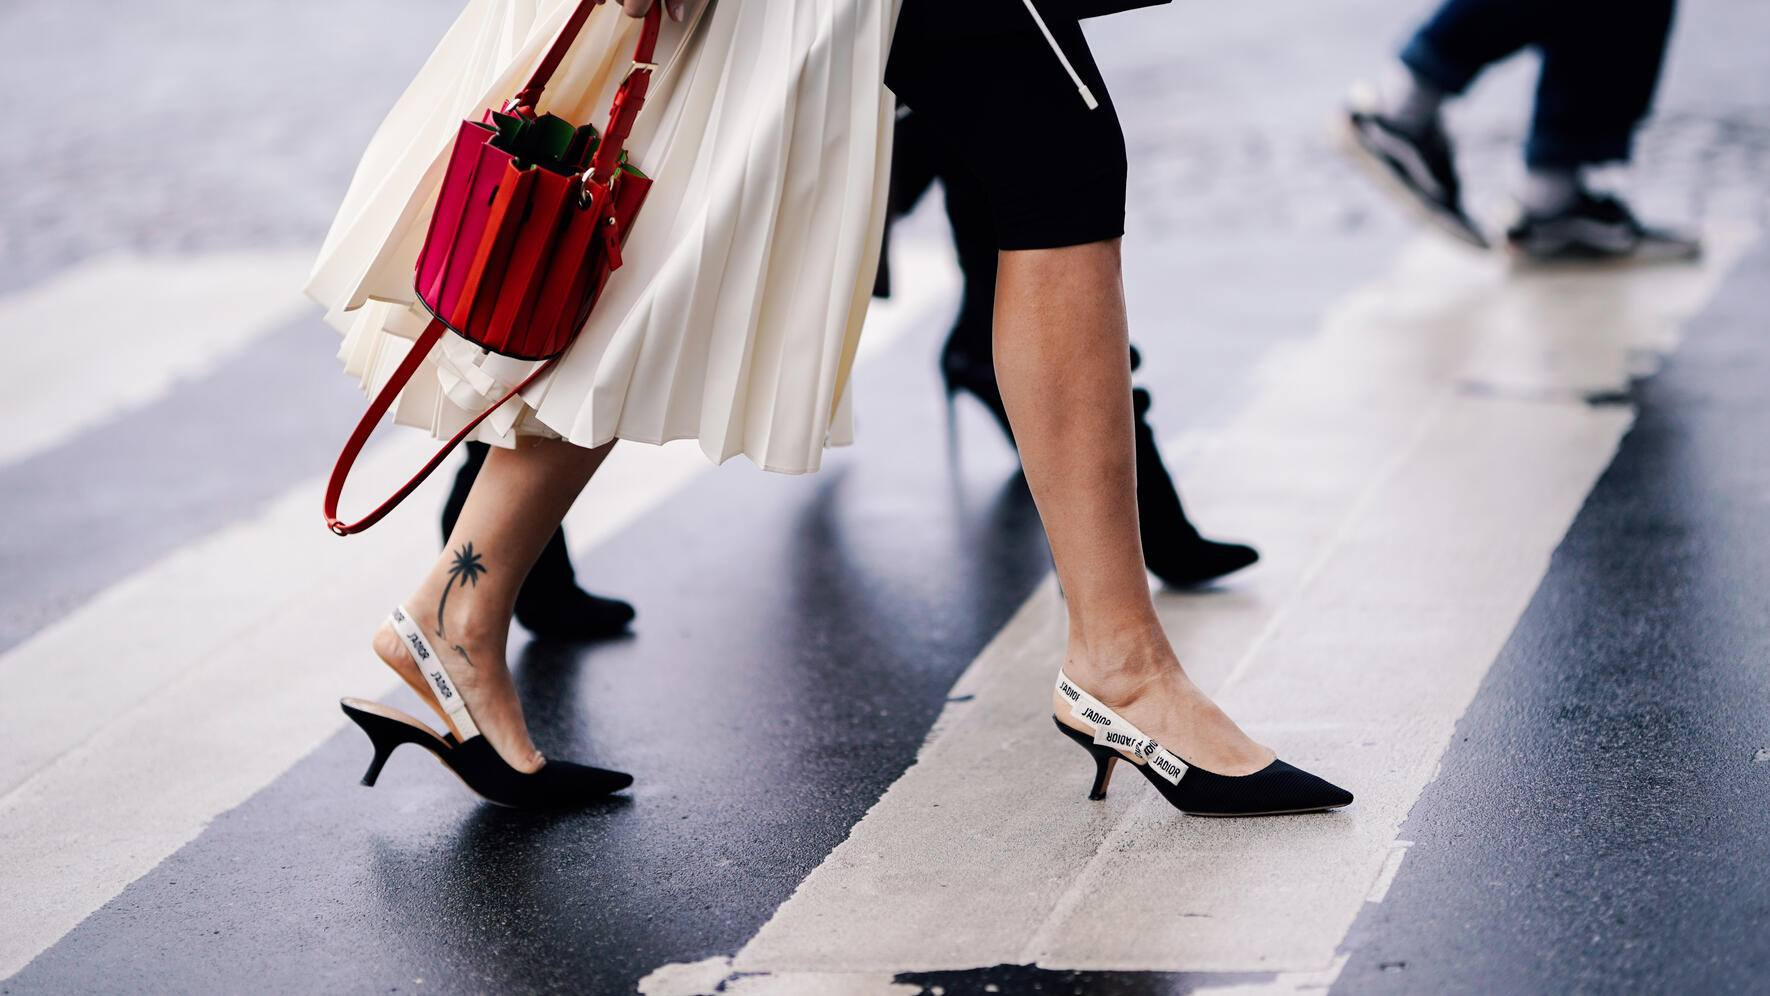 PARIS, FRANCE - MARCH 02: A guest wears a red pleated bucket bag, black J'Adior Dior shoes, outside Haider Ackermann, during Paris Fashion Week Womenswear Fall/Winter 2019/2020, on March 02, 2019 in Paris, France. (Photo by Edward Berthelot/Getty Images)